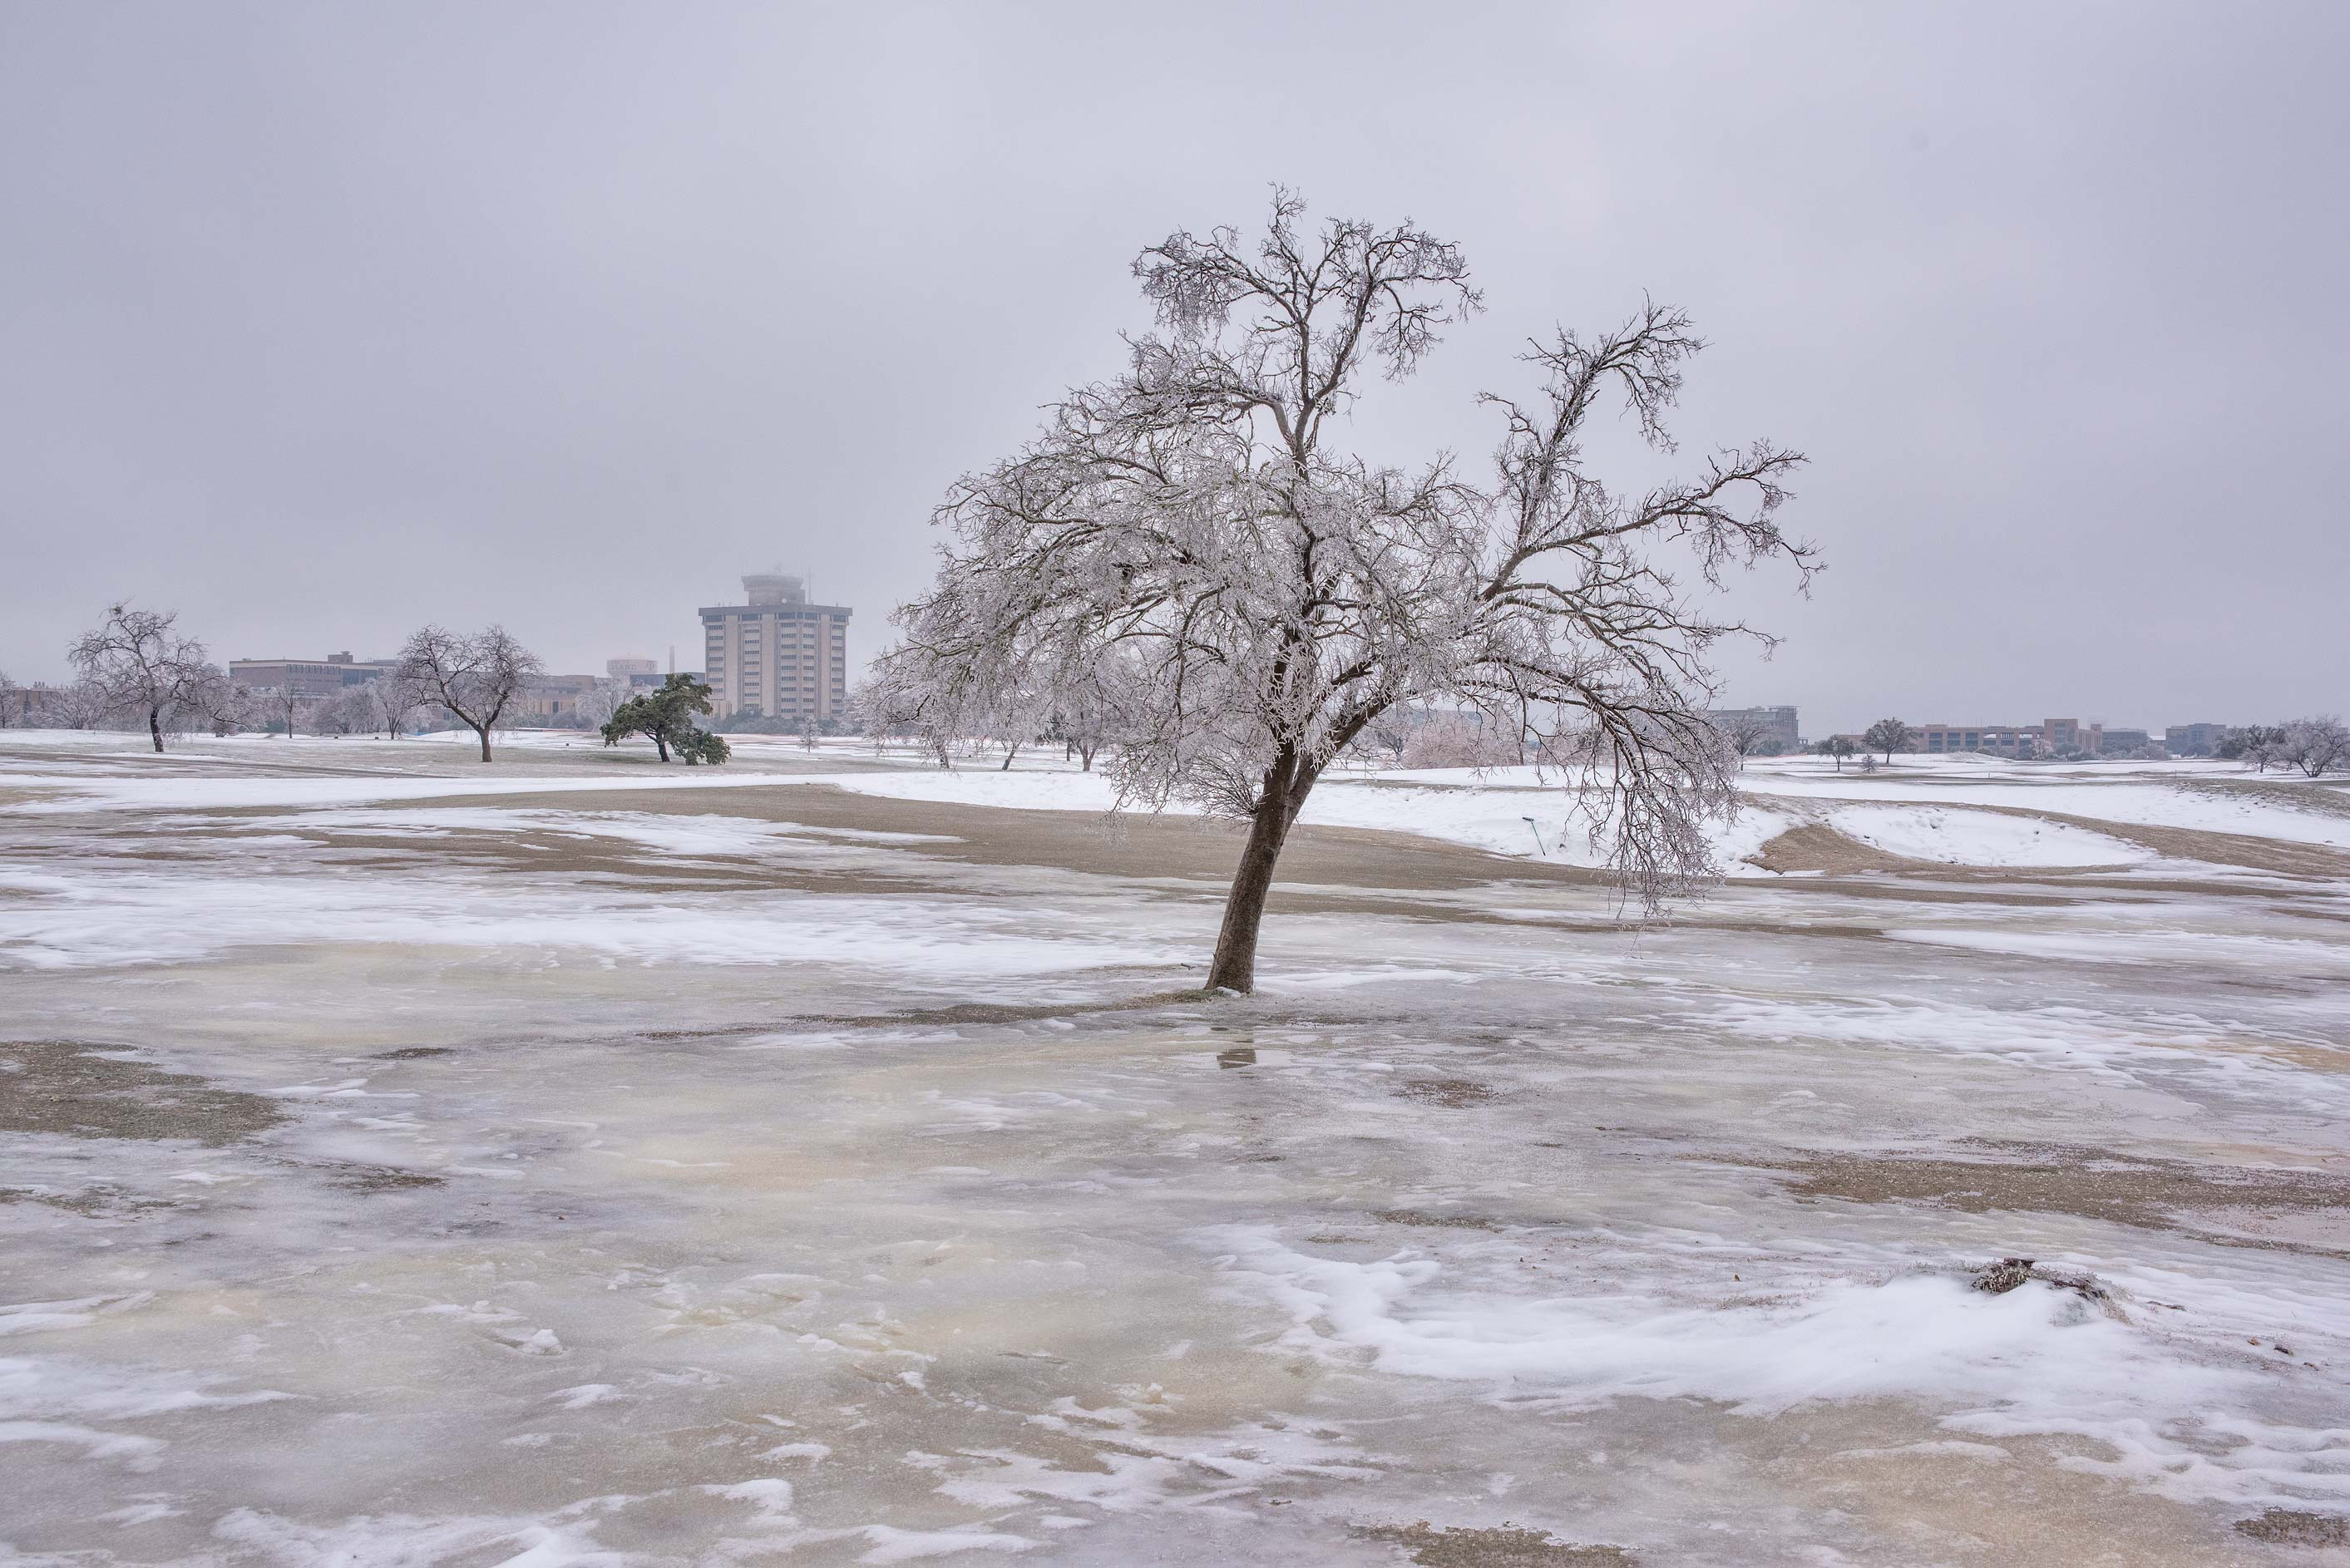 Icy tree on a golf course on campus of Texas A&M University. College Station, Texas